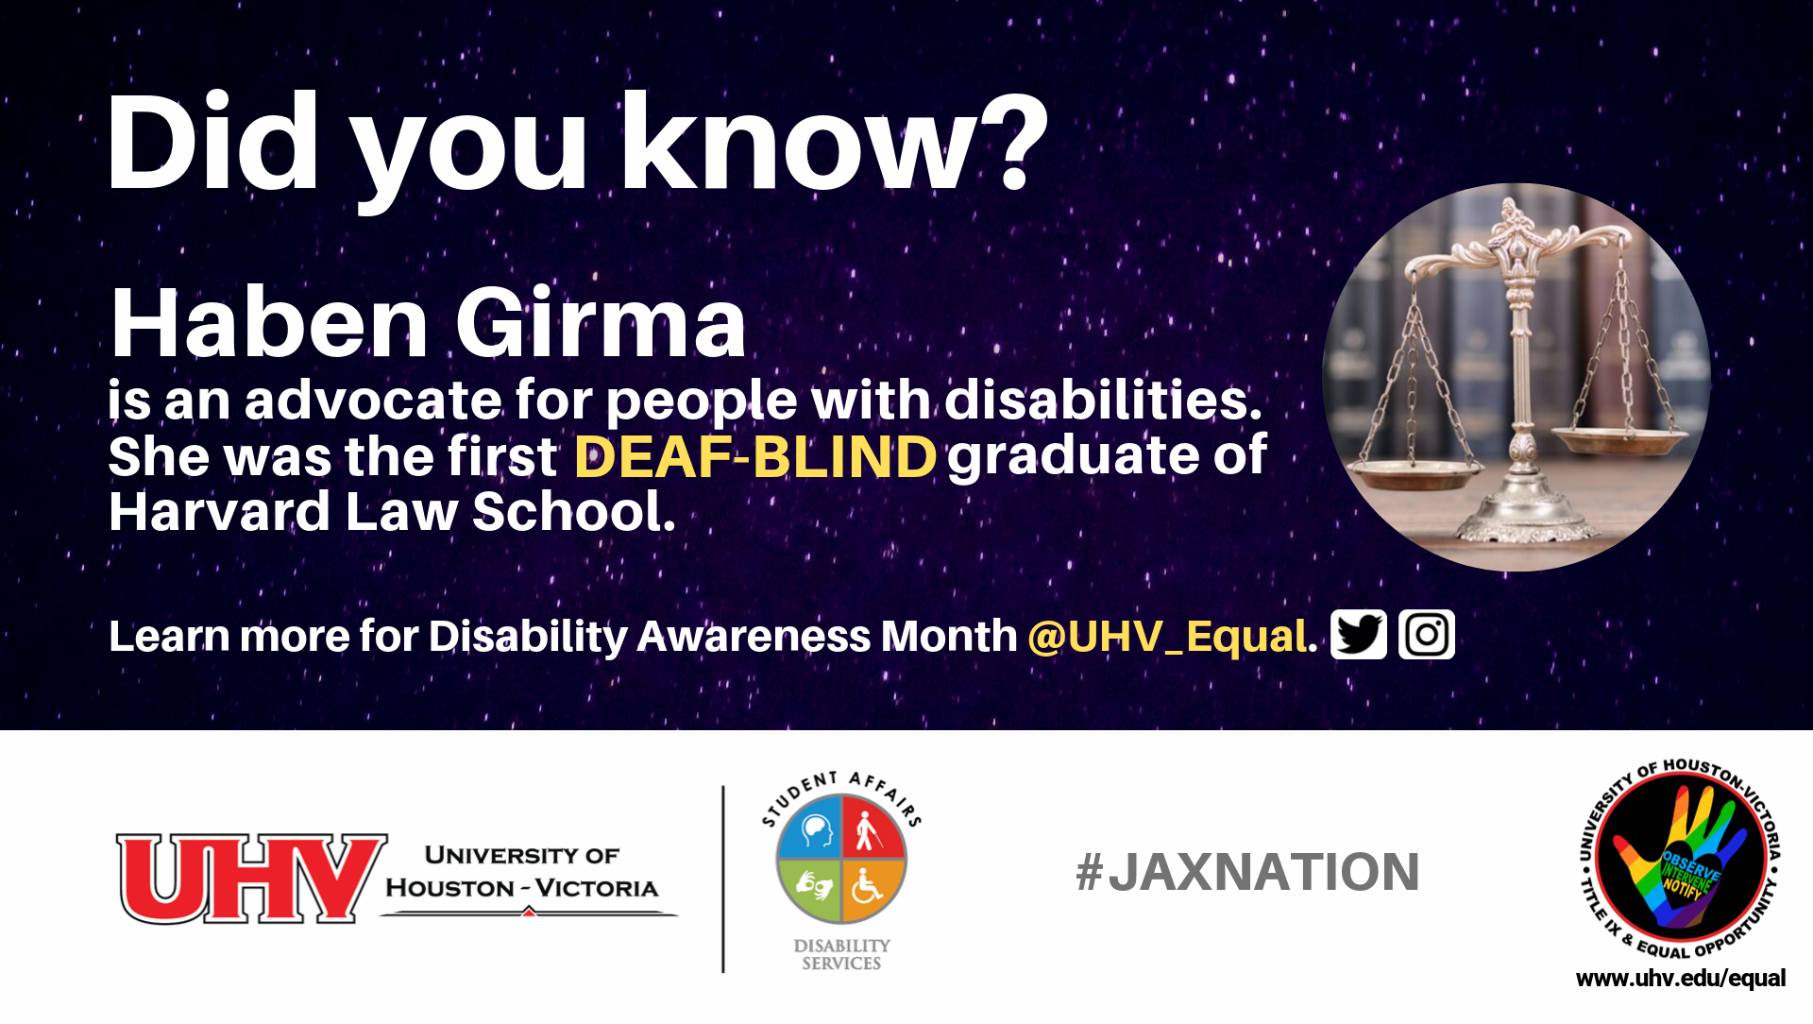 Did you know? Haben Girma is an advocate for people with disabilities. She was the first deaf-blind graduate of Harvard Law School. UHV Disability Services Logo. Learn more for Disability Awareness Month @UHV_Equal.#jaxnation. University of Houston-Victoria Title IX and Equal Opportunity Logo (rainbow hand with heart insert with words Observe, Intervene, Notify).